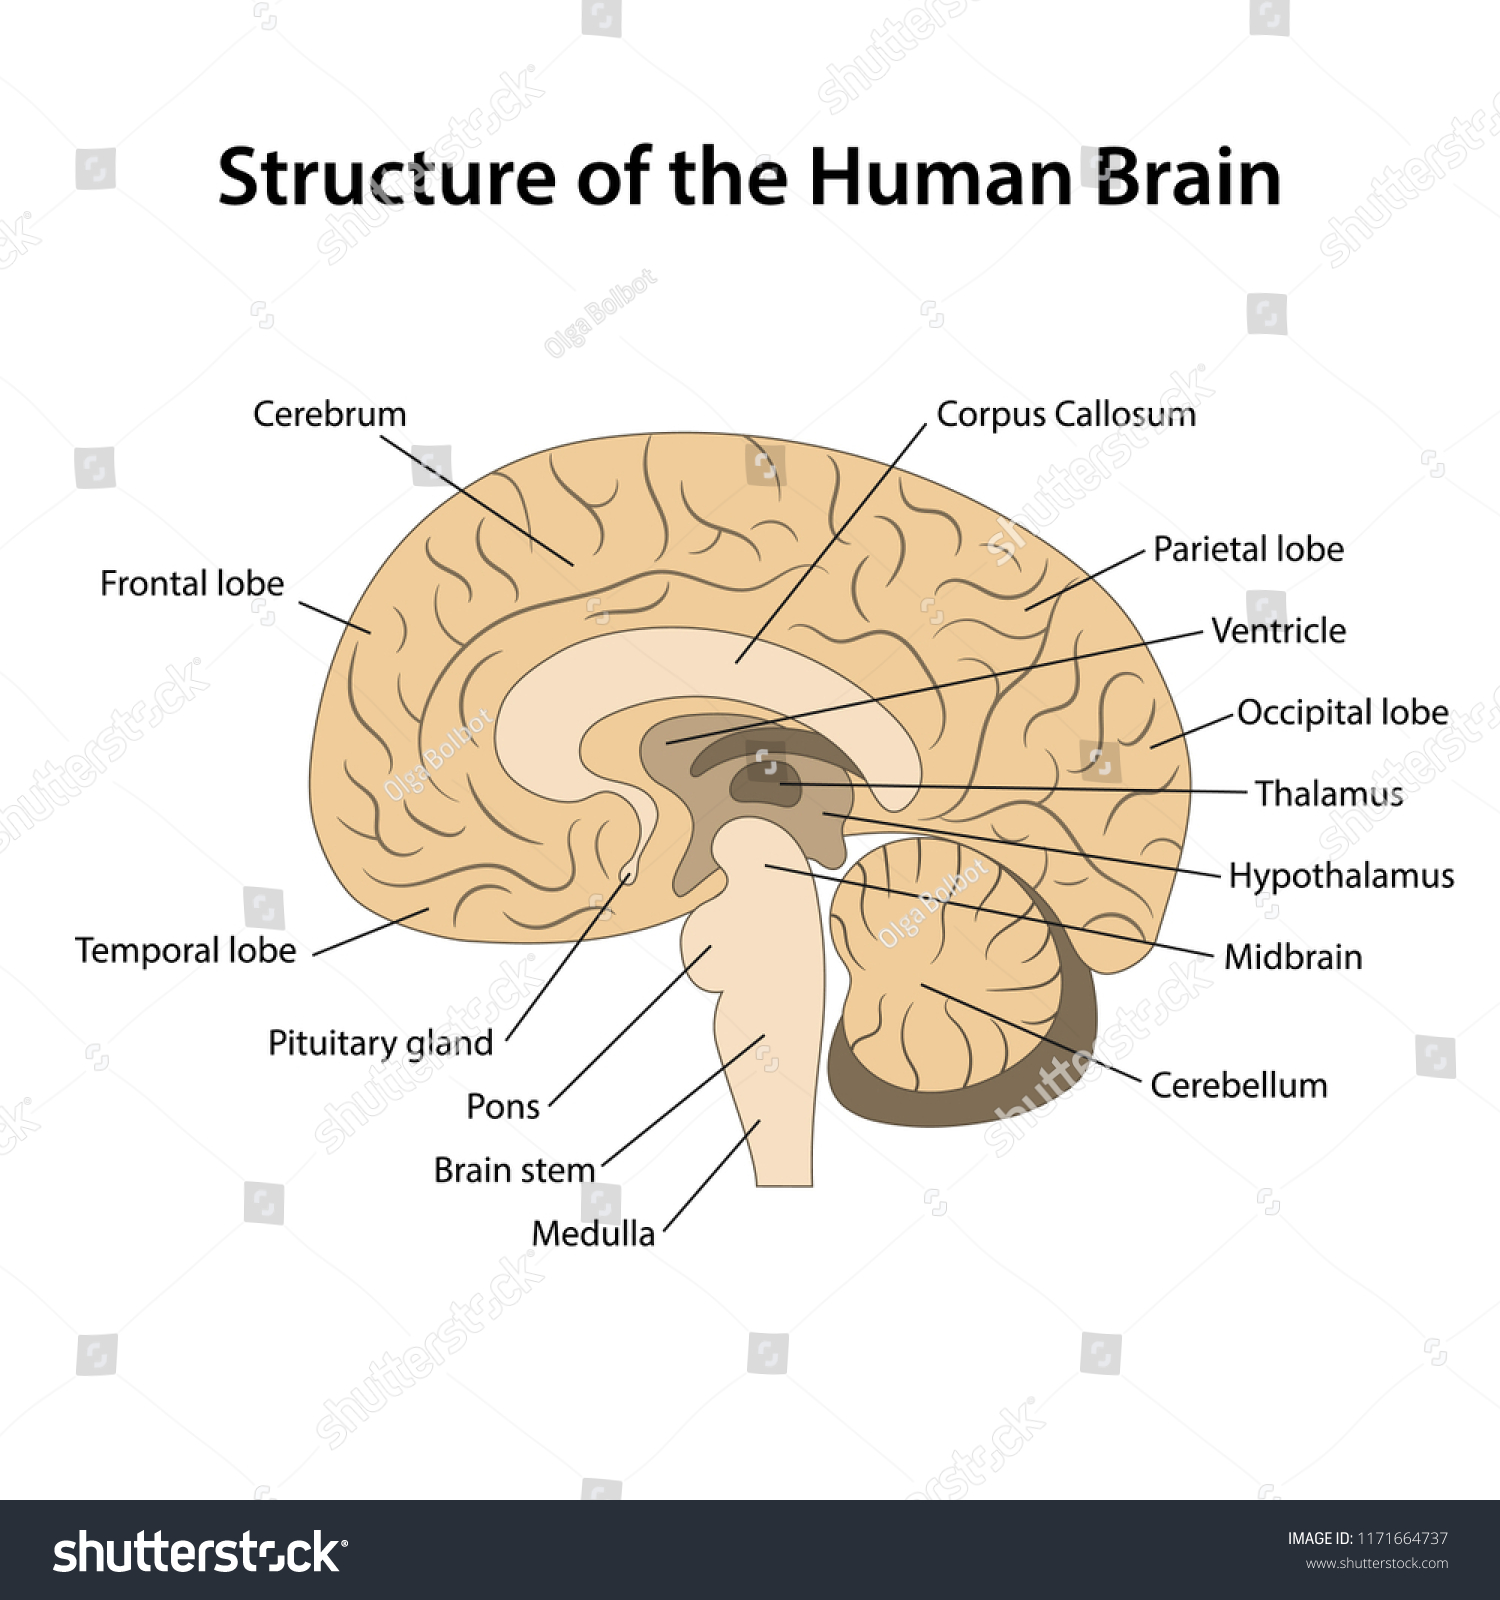 hight resolution of structure of the human brain with main parts labeled vector illustration